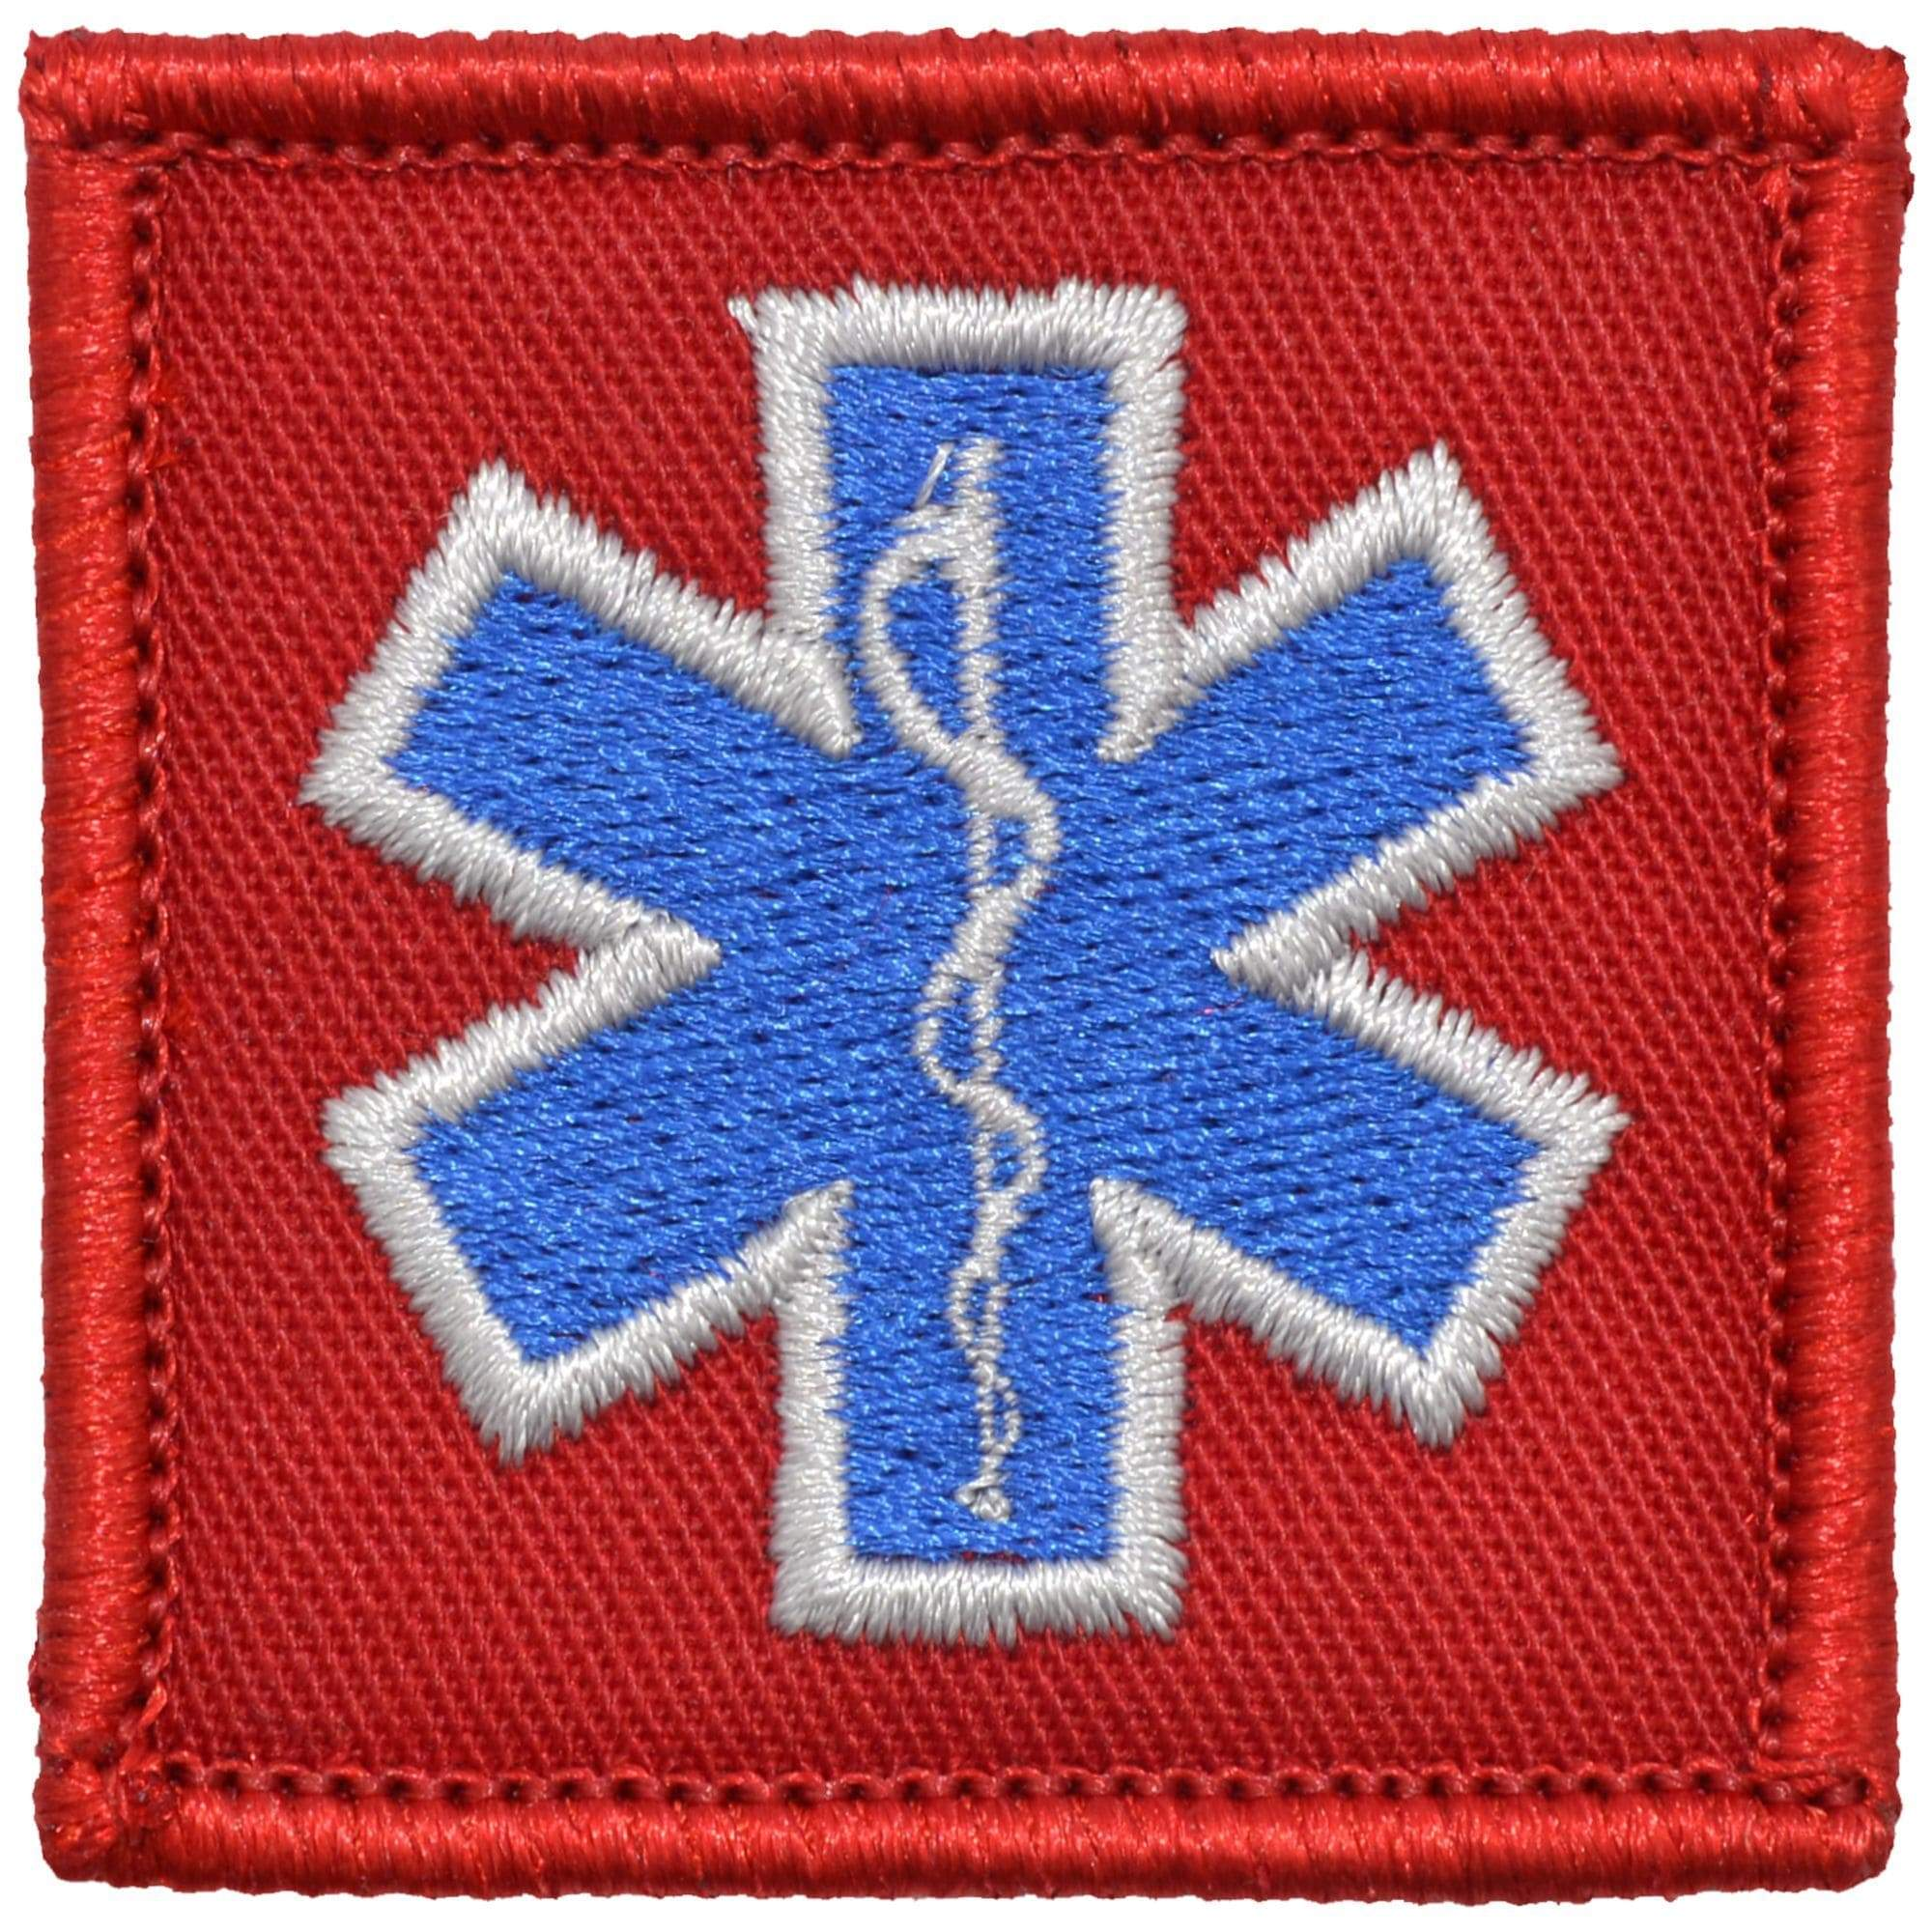 Tactical Gear Junkie Patches Red EMT Star of Life Caduceus - 2x2 Patch